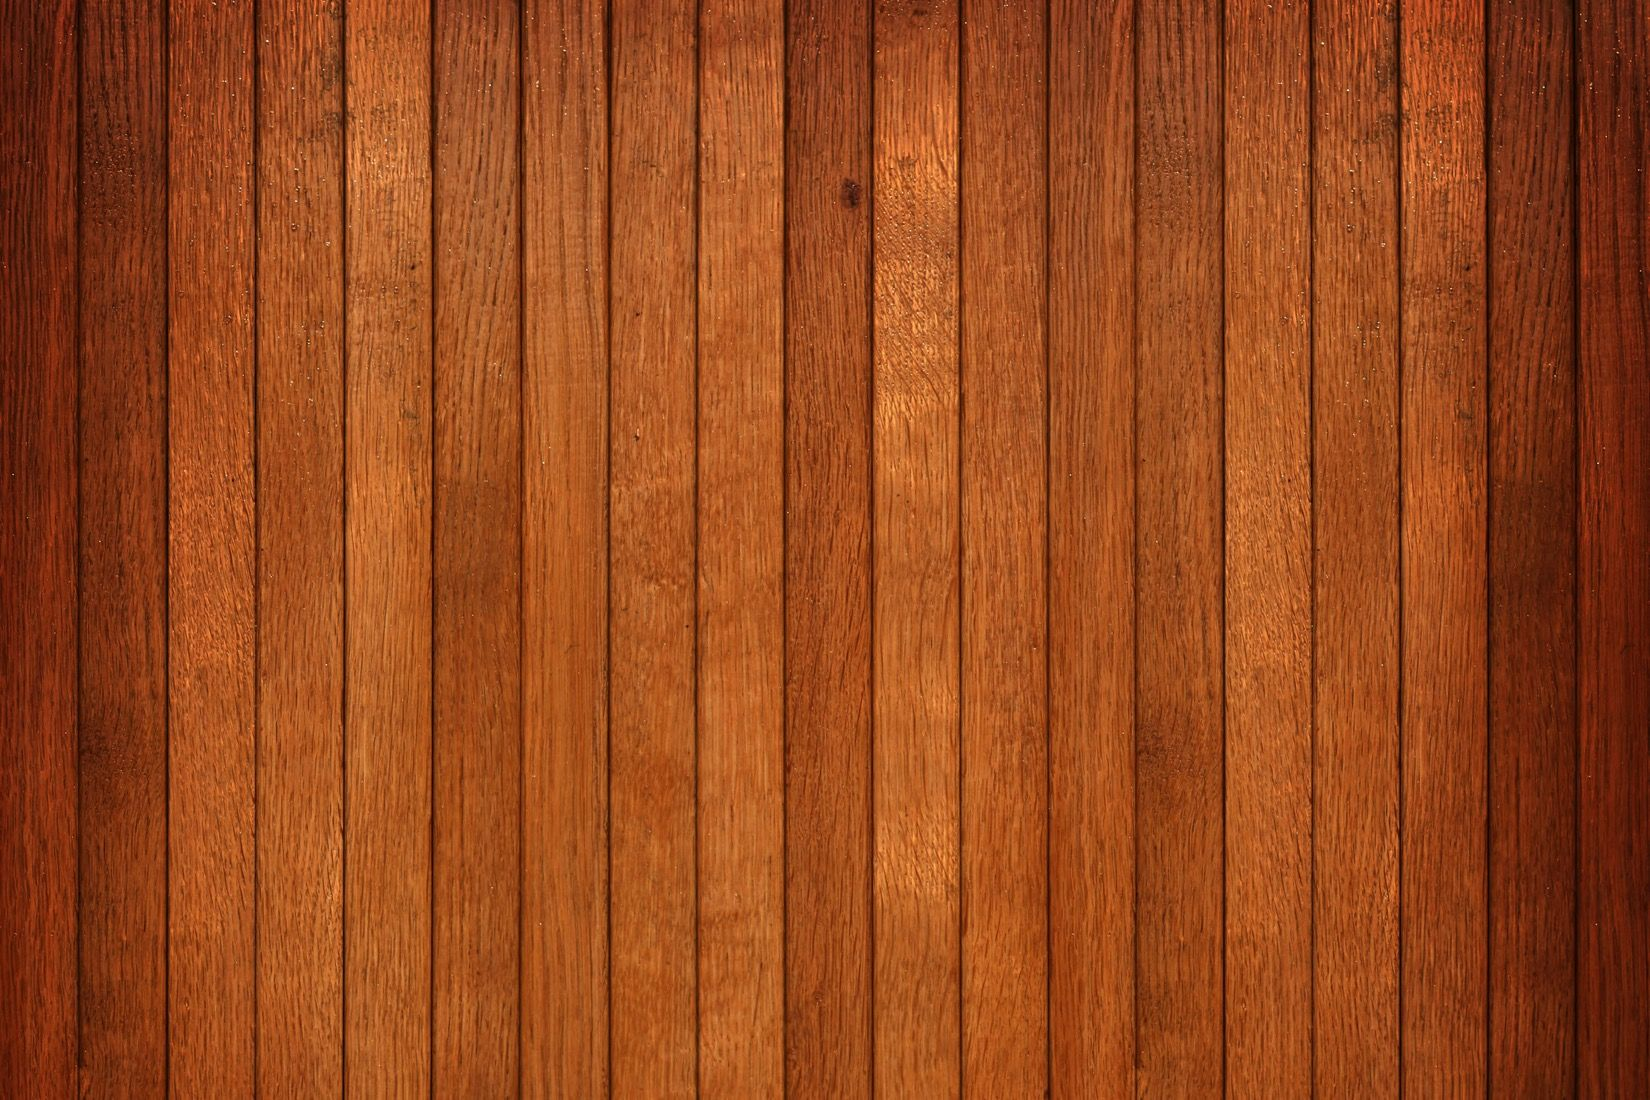 Varnished Wood Texture Mural Wallpaper in 2020 Wood